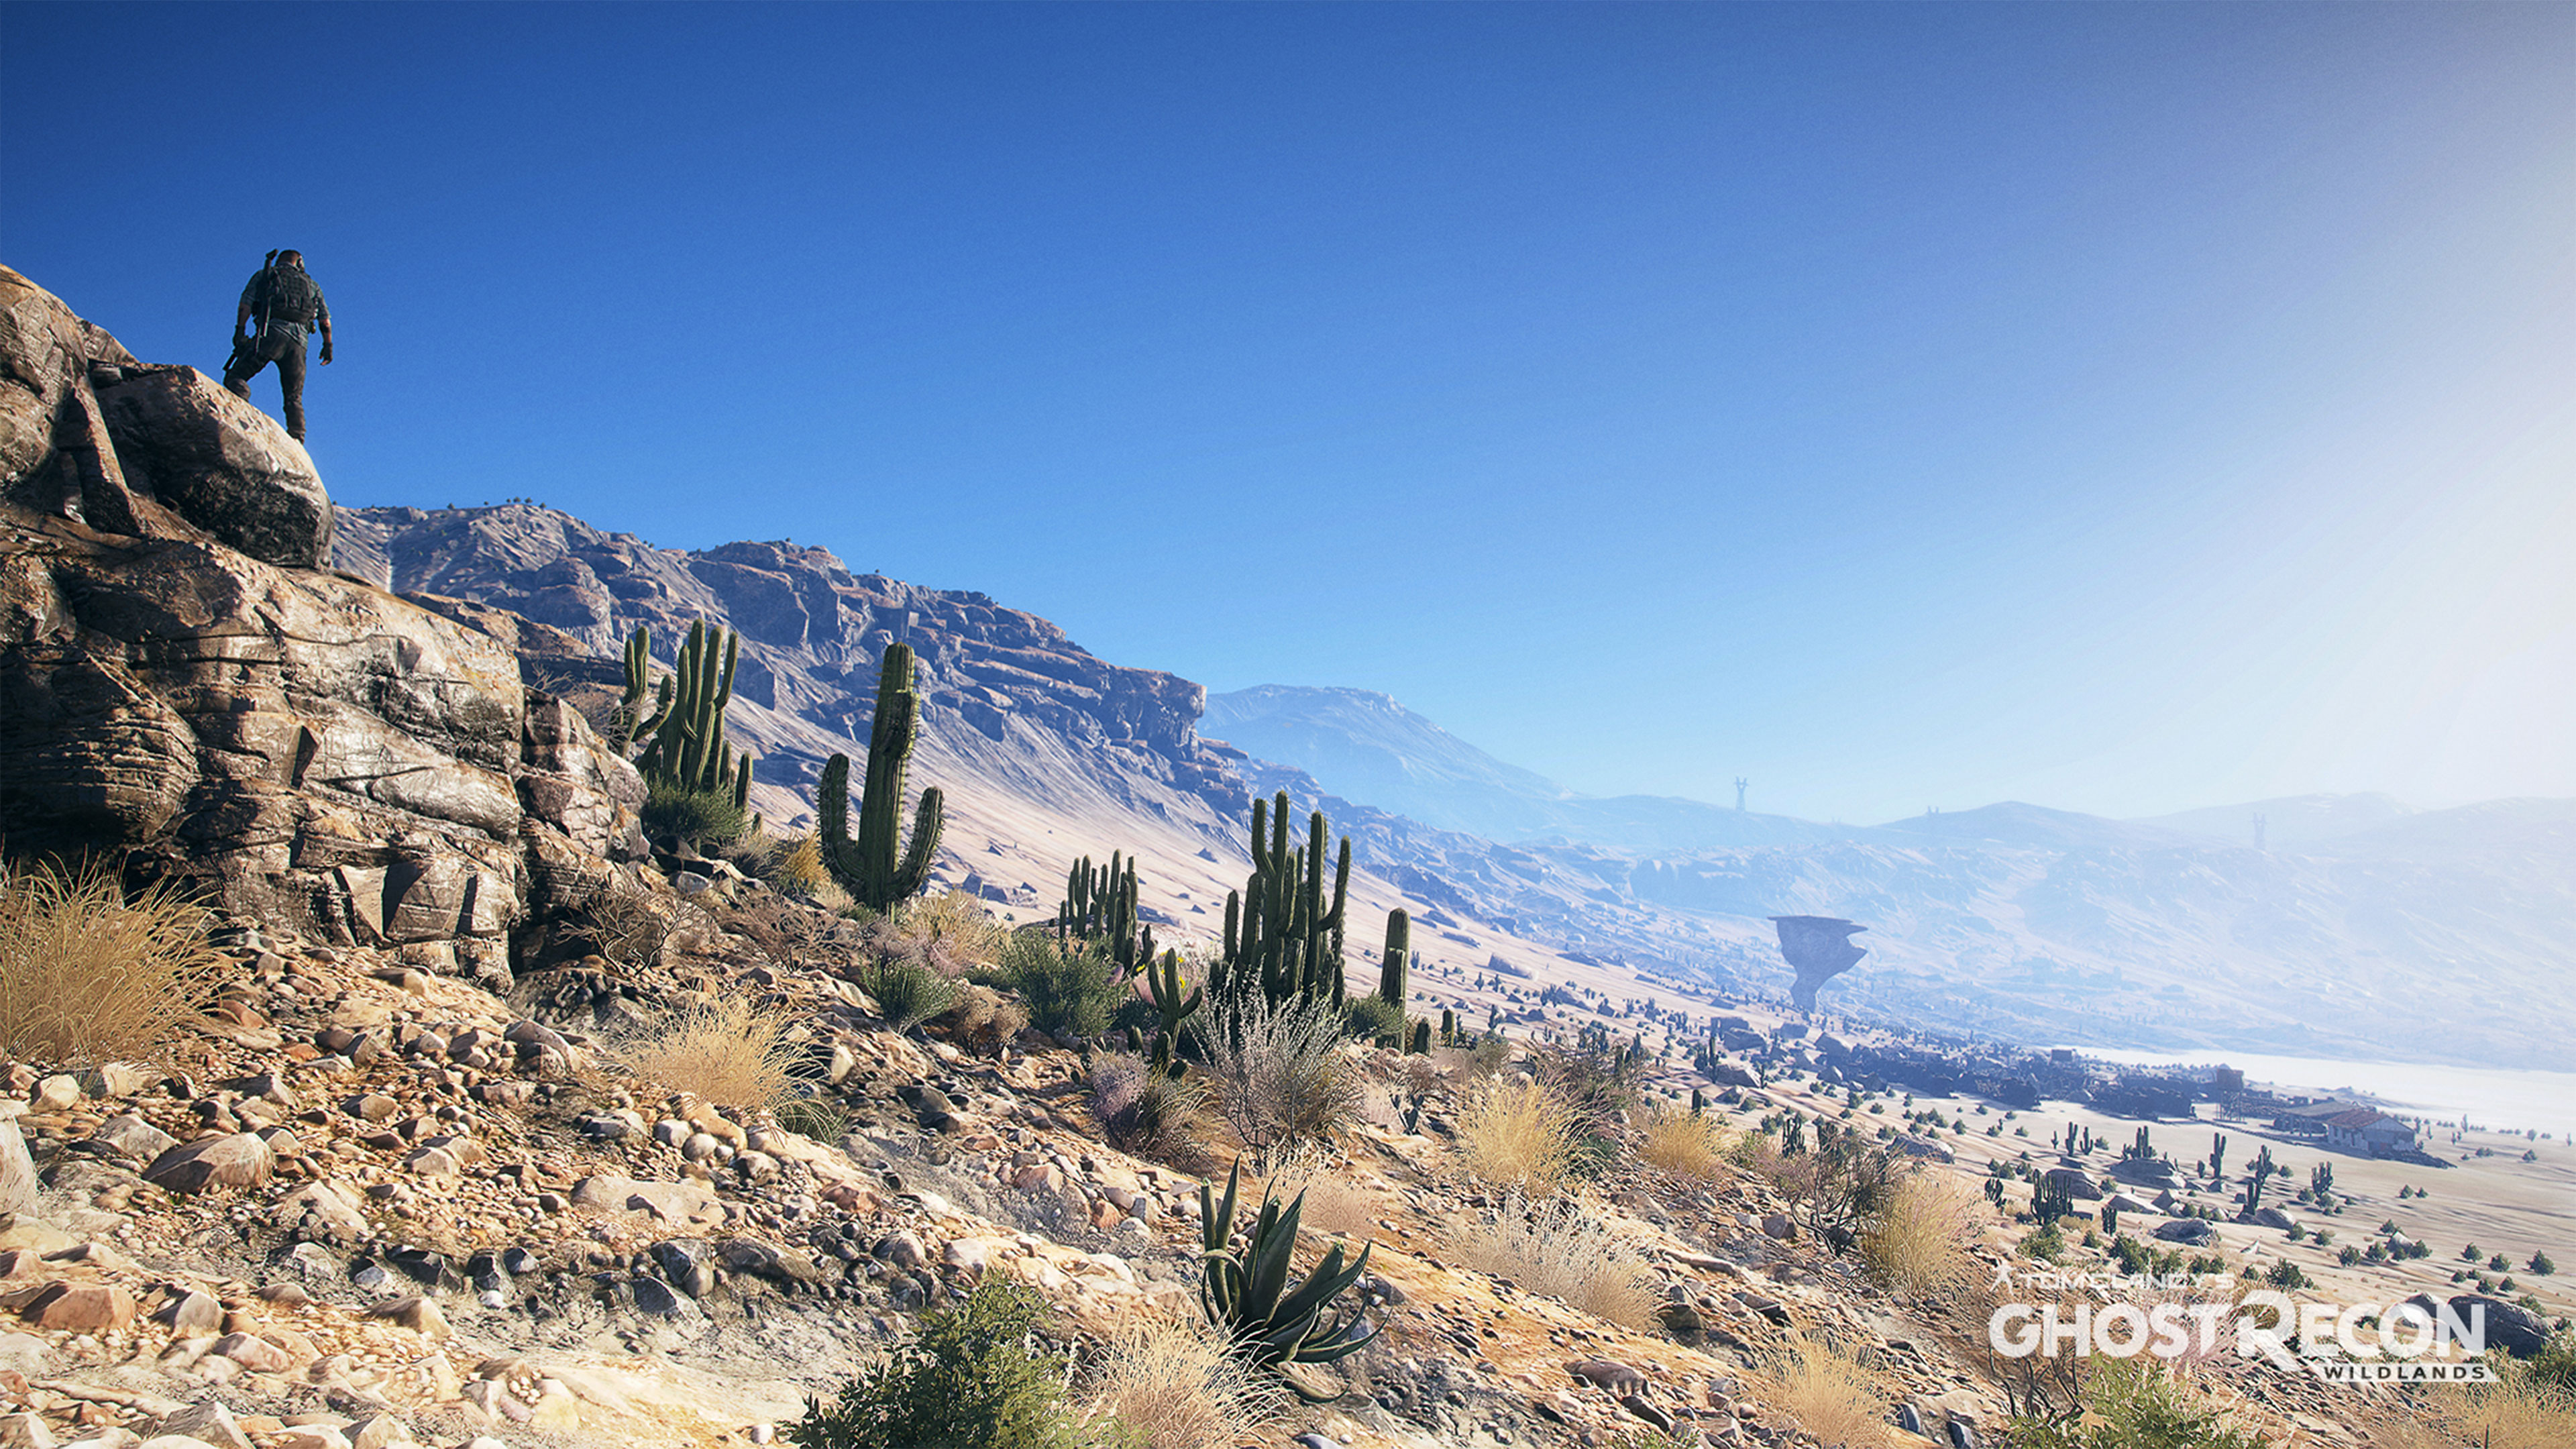 Tom Clancys Ghost Recon Wildlands Wallpapers In Ultra Hd 4k